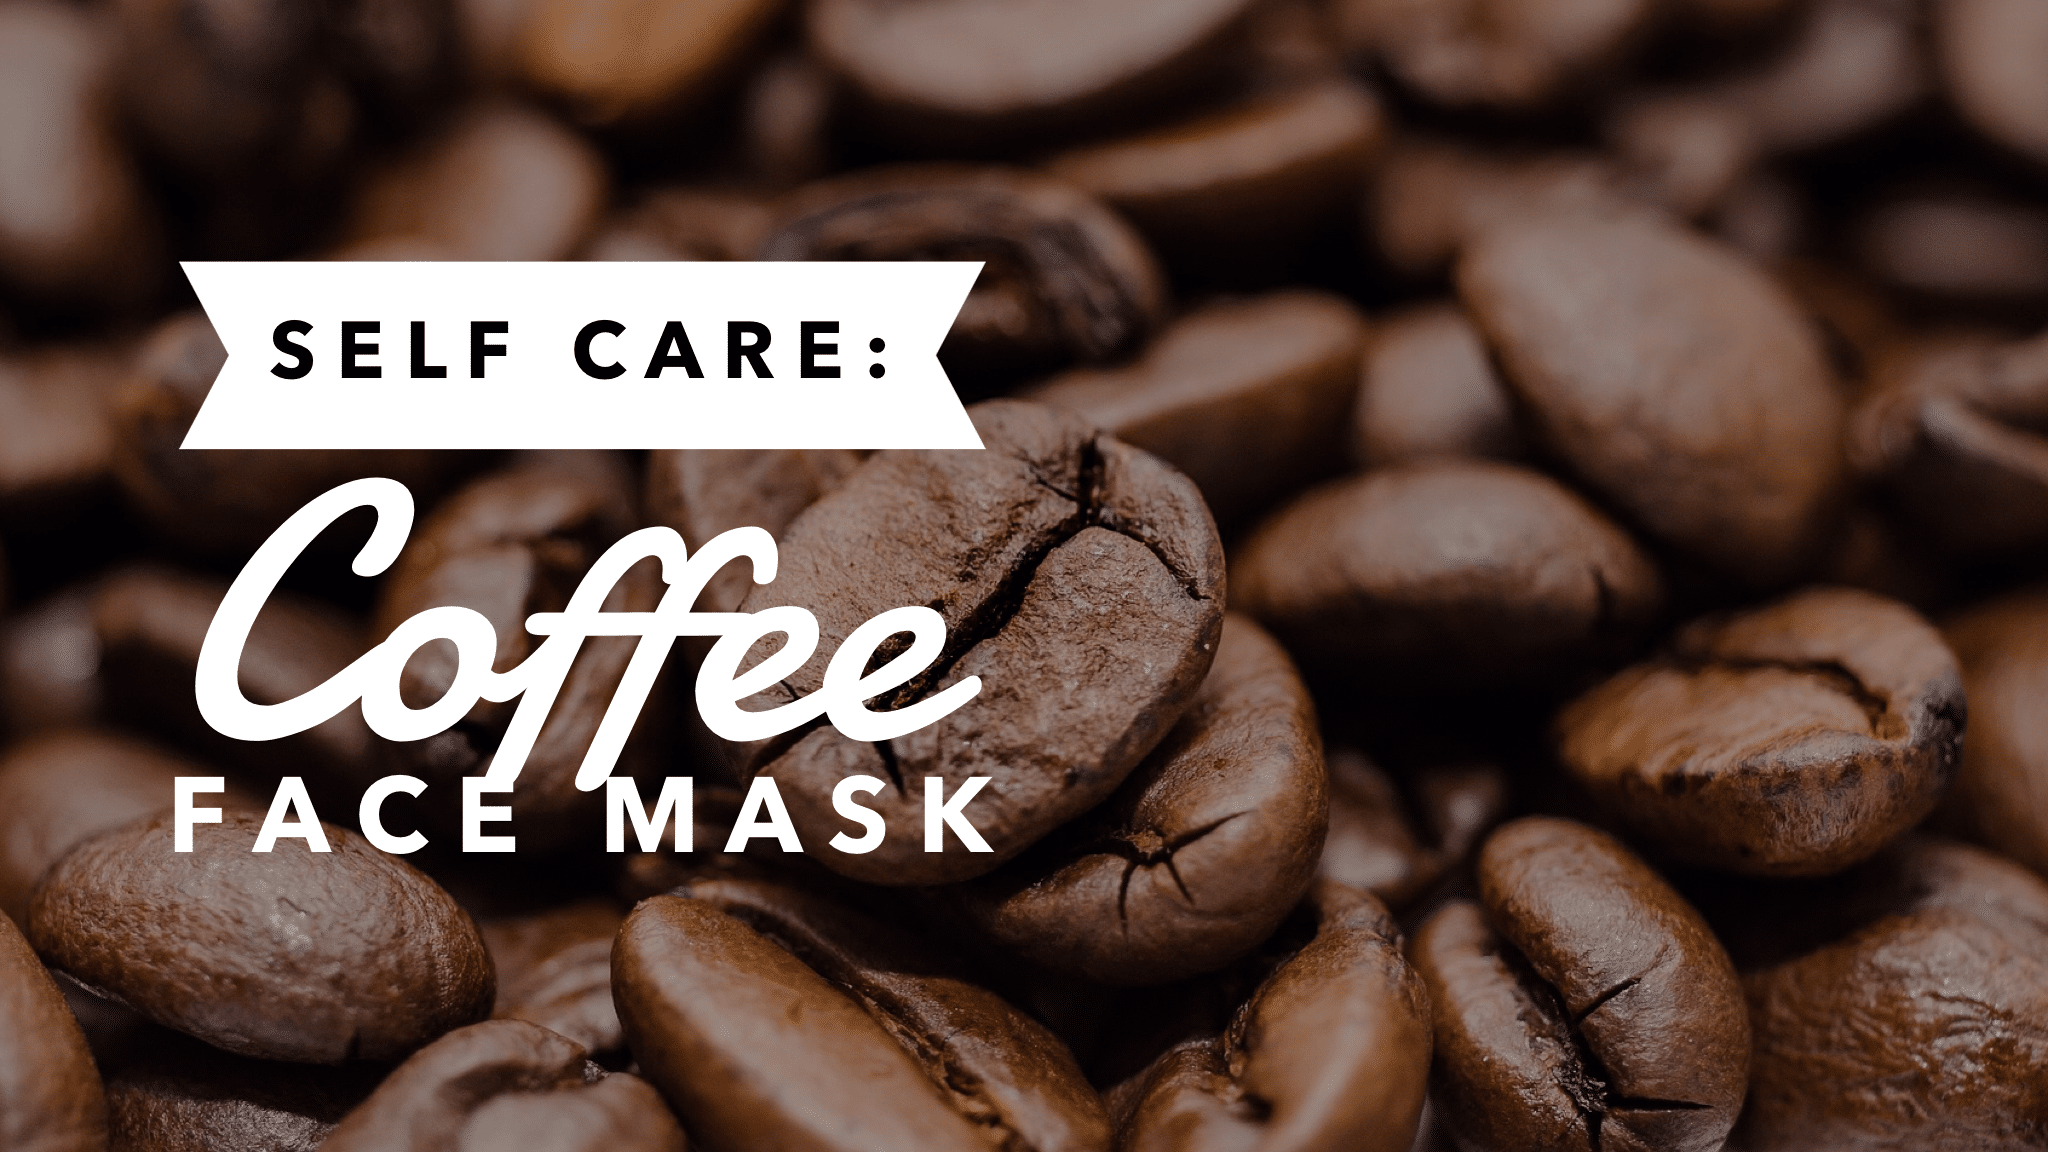 Self Care: Coffee Face Mask